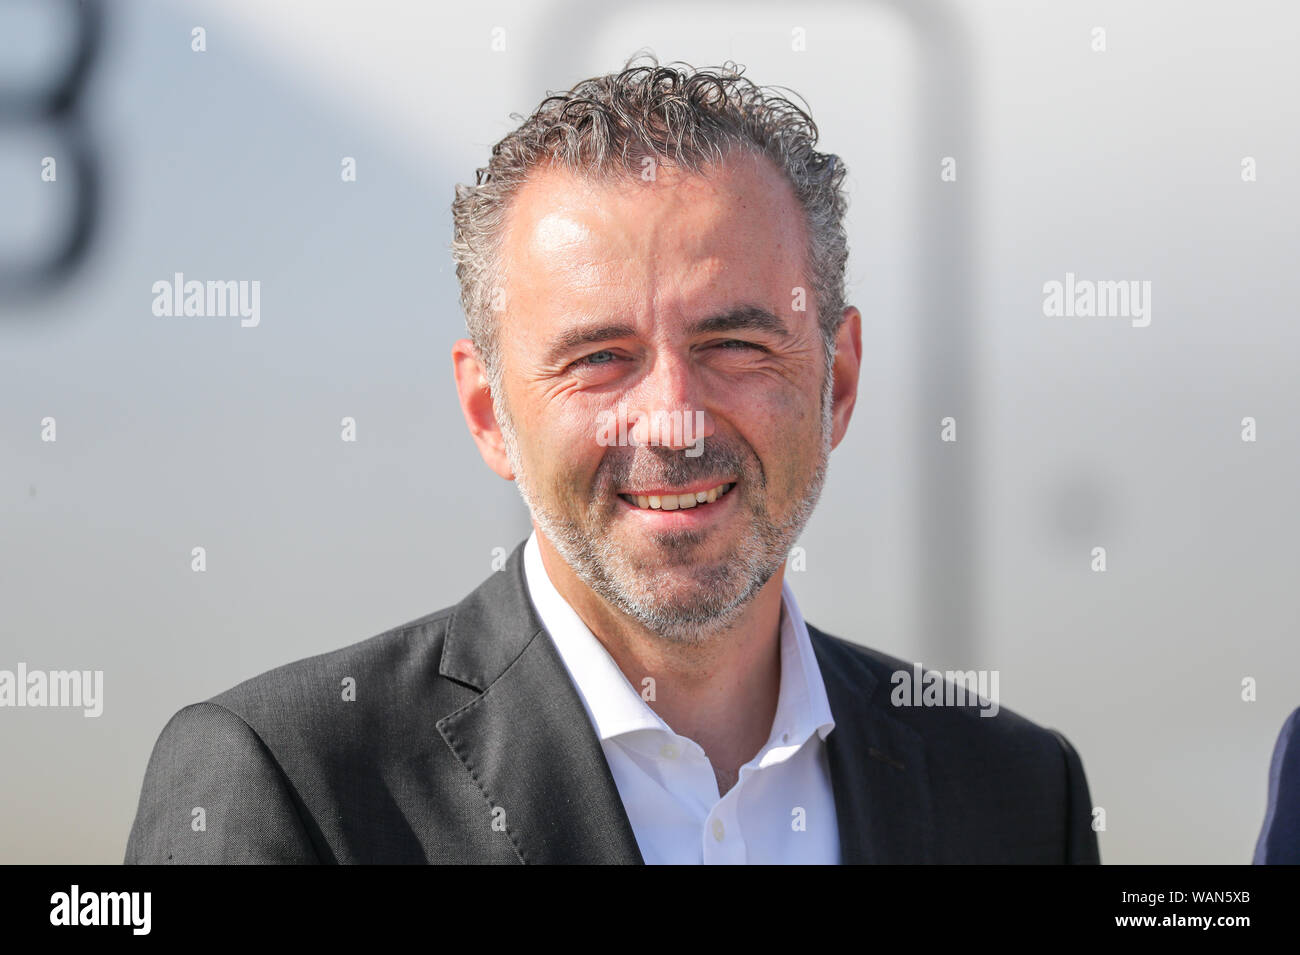 Schkeuditz, Germany. 21st Aug, 2019. Thomas Jarzombek, Federal Government Commissioner for Aerospace, is at Leipzig-Halle Airport. Credit: Jan Woitas/dpa-Zentralbild/dpa/Alamy Live News Stock Photo